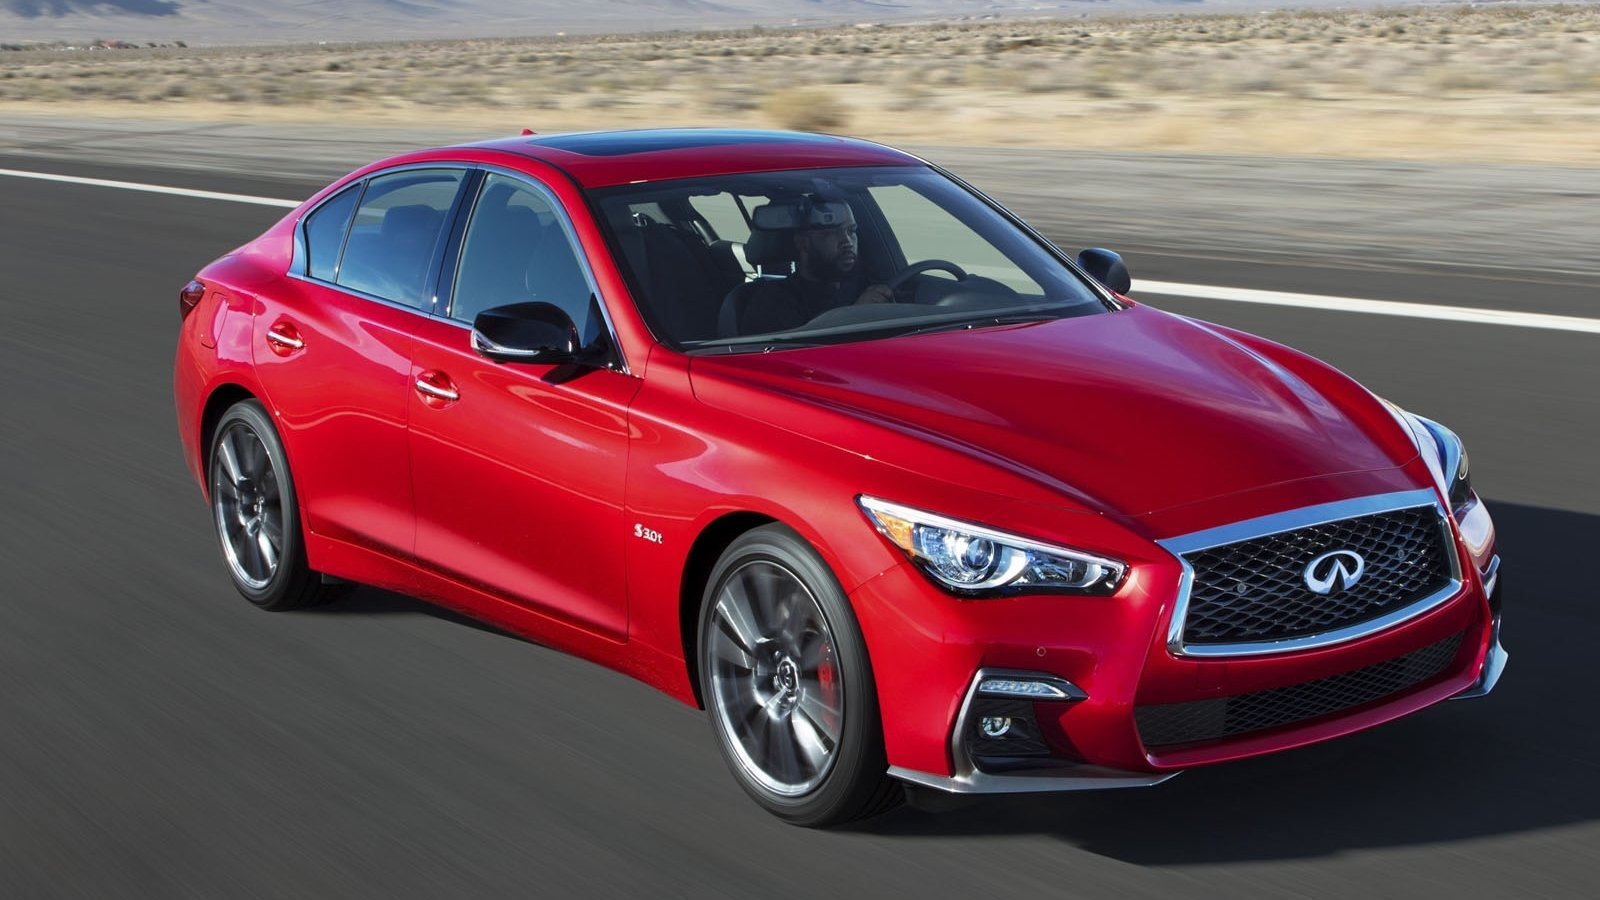 2018 infiniti q50 picture 708709 car review top speed. Black Bedroom Furniture Sets. Home Design Ideas